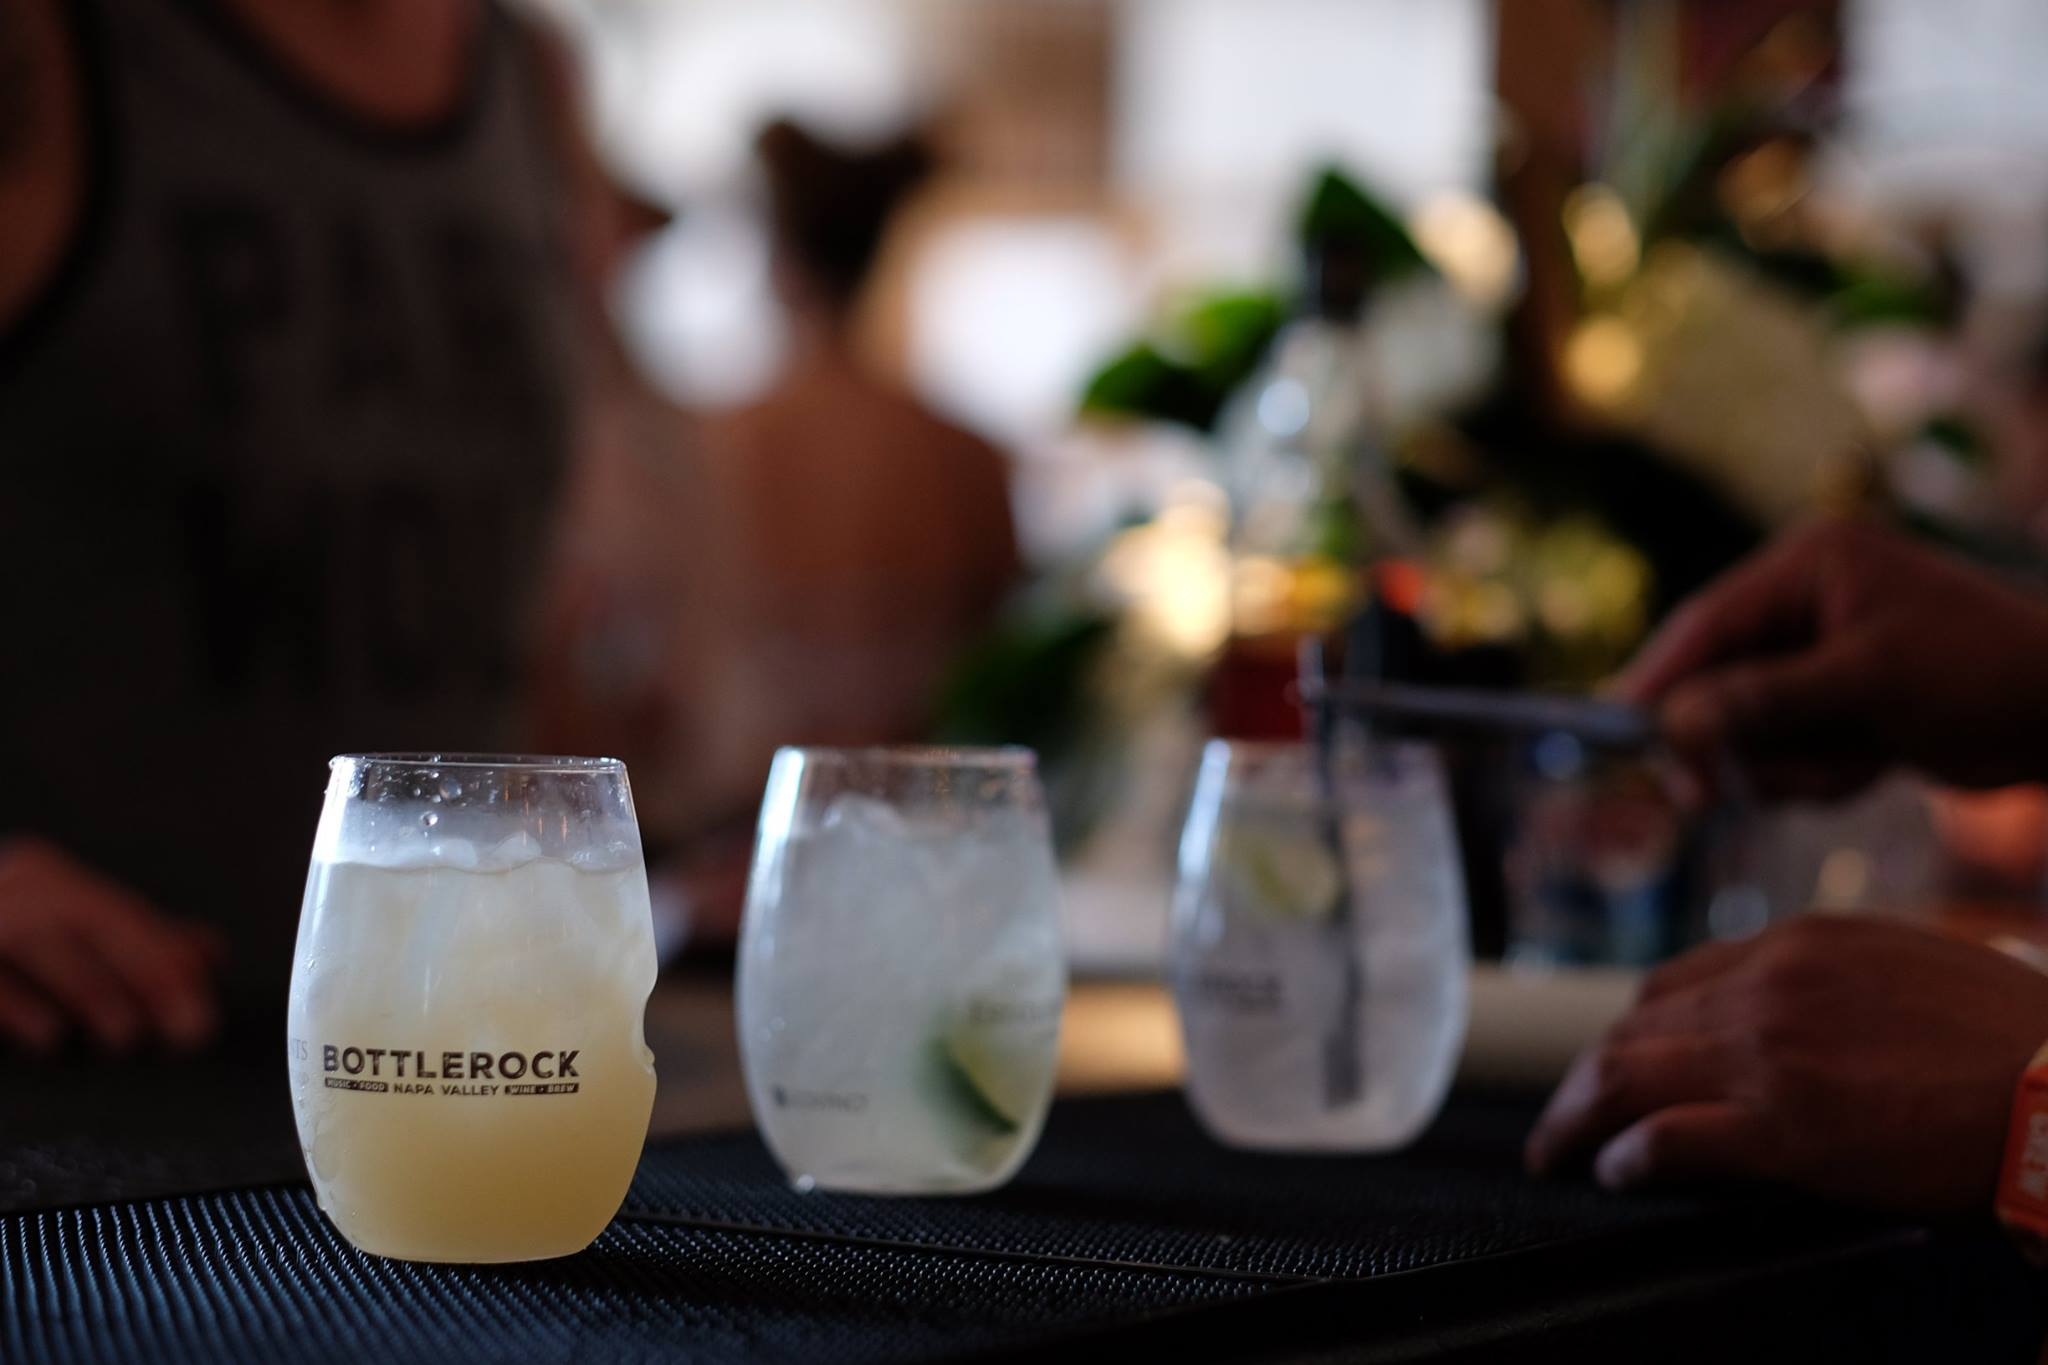 Craft cocktails are part of the culinary lineup at BottleRock